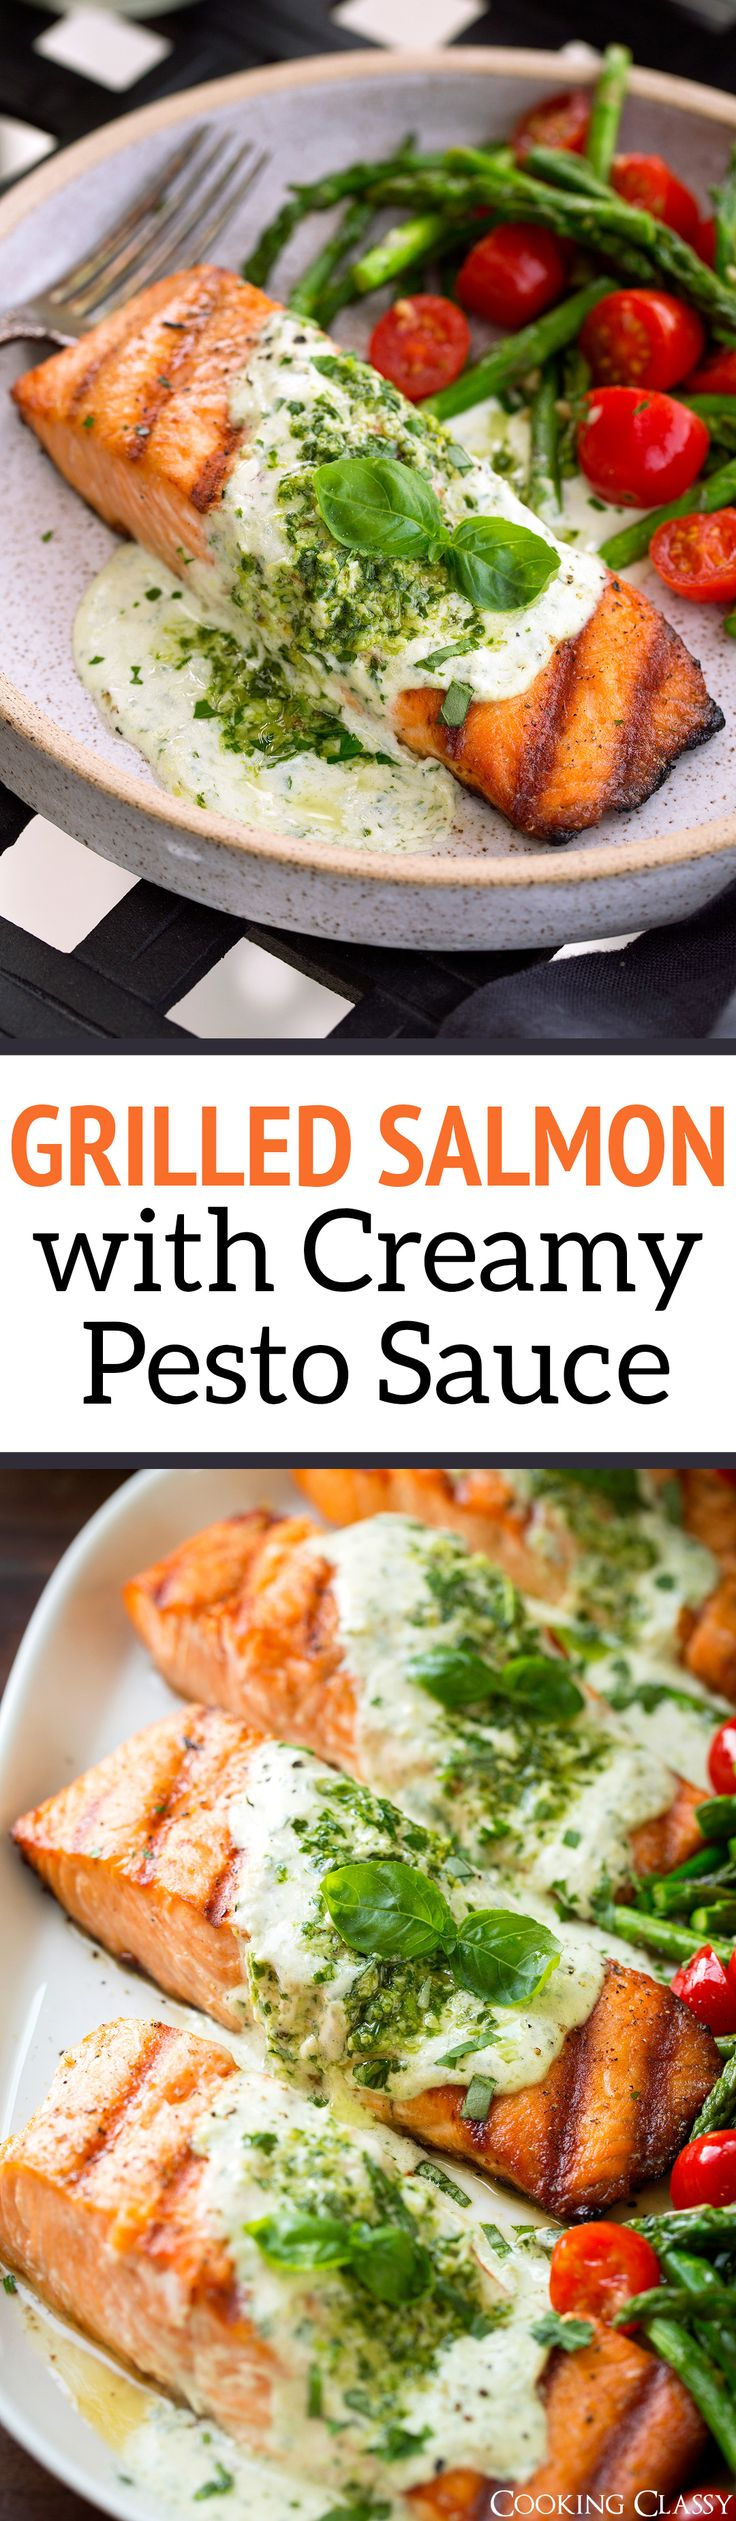 Grilled Salmon with Creamy Pesto Sauce - Cooking Classy (Baking Shrimp Dinner)